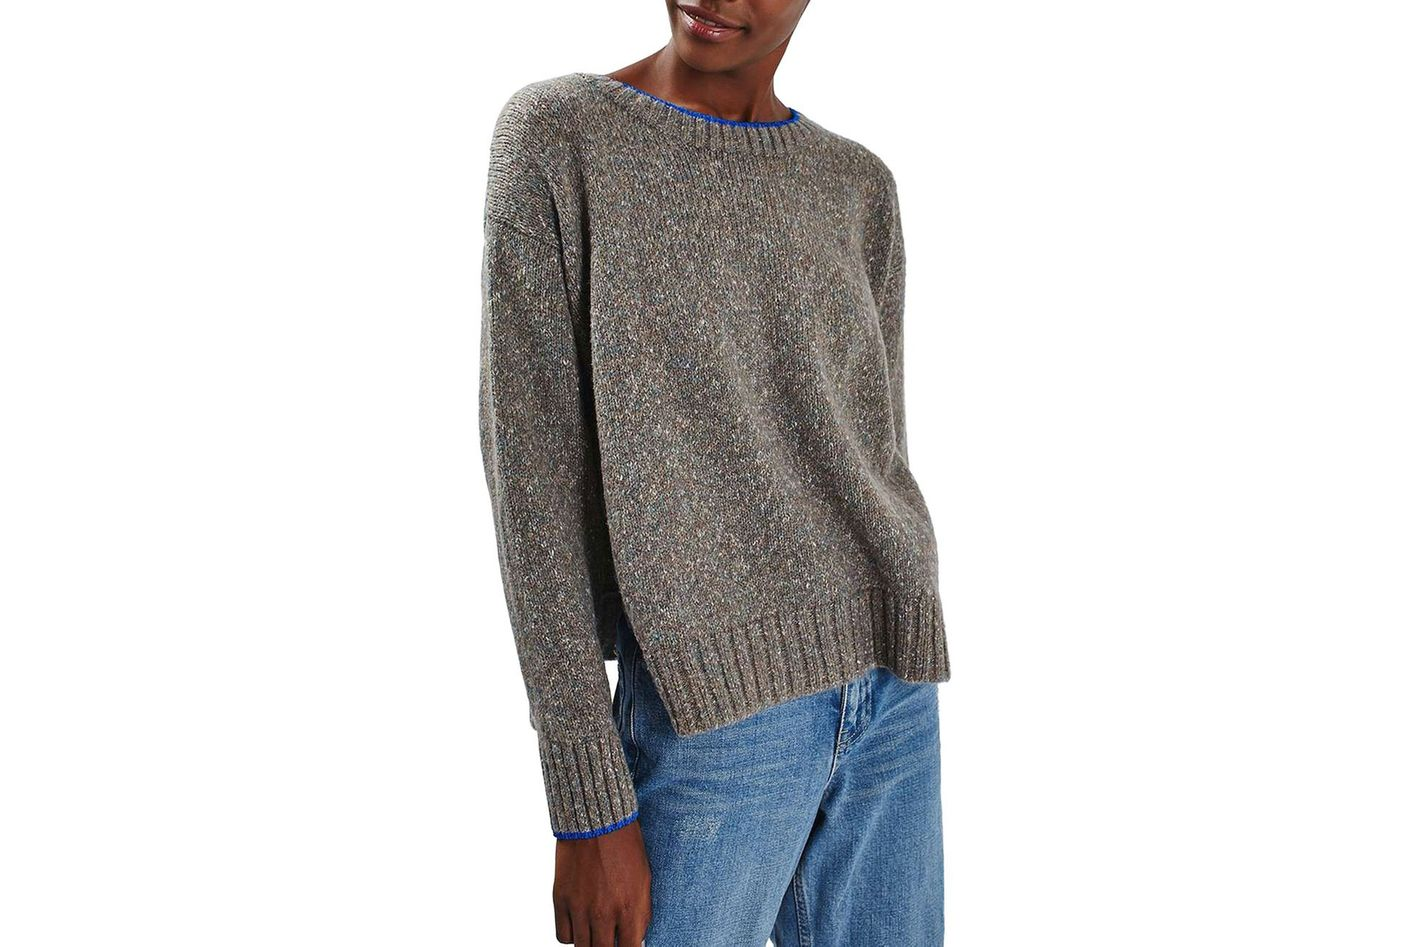 Topshop Marled Sweater